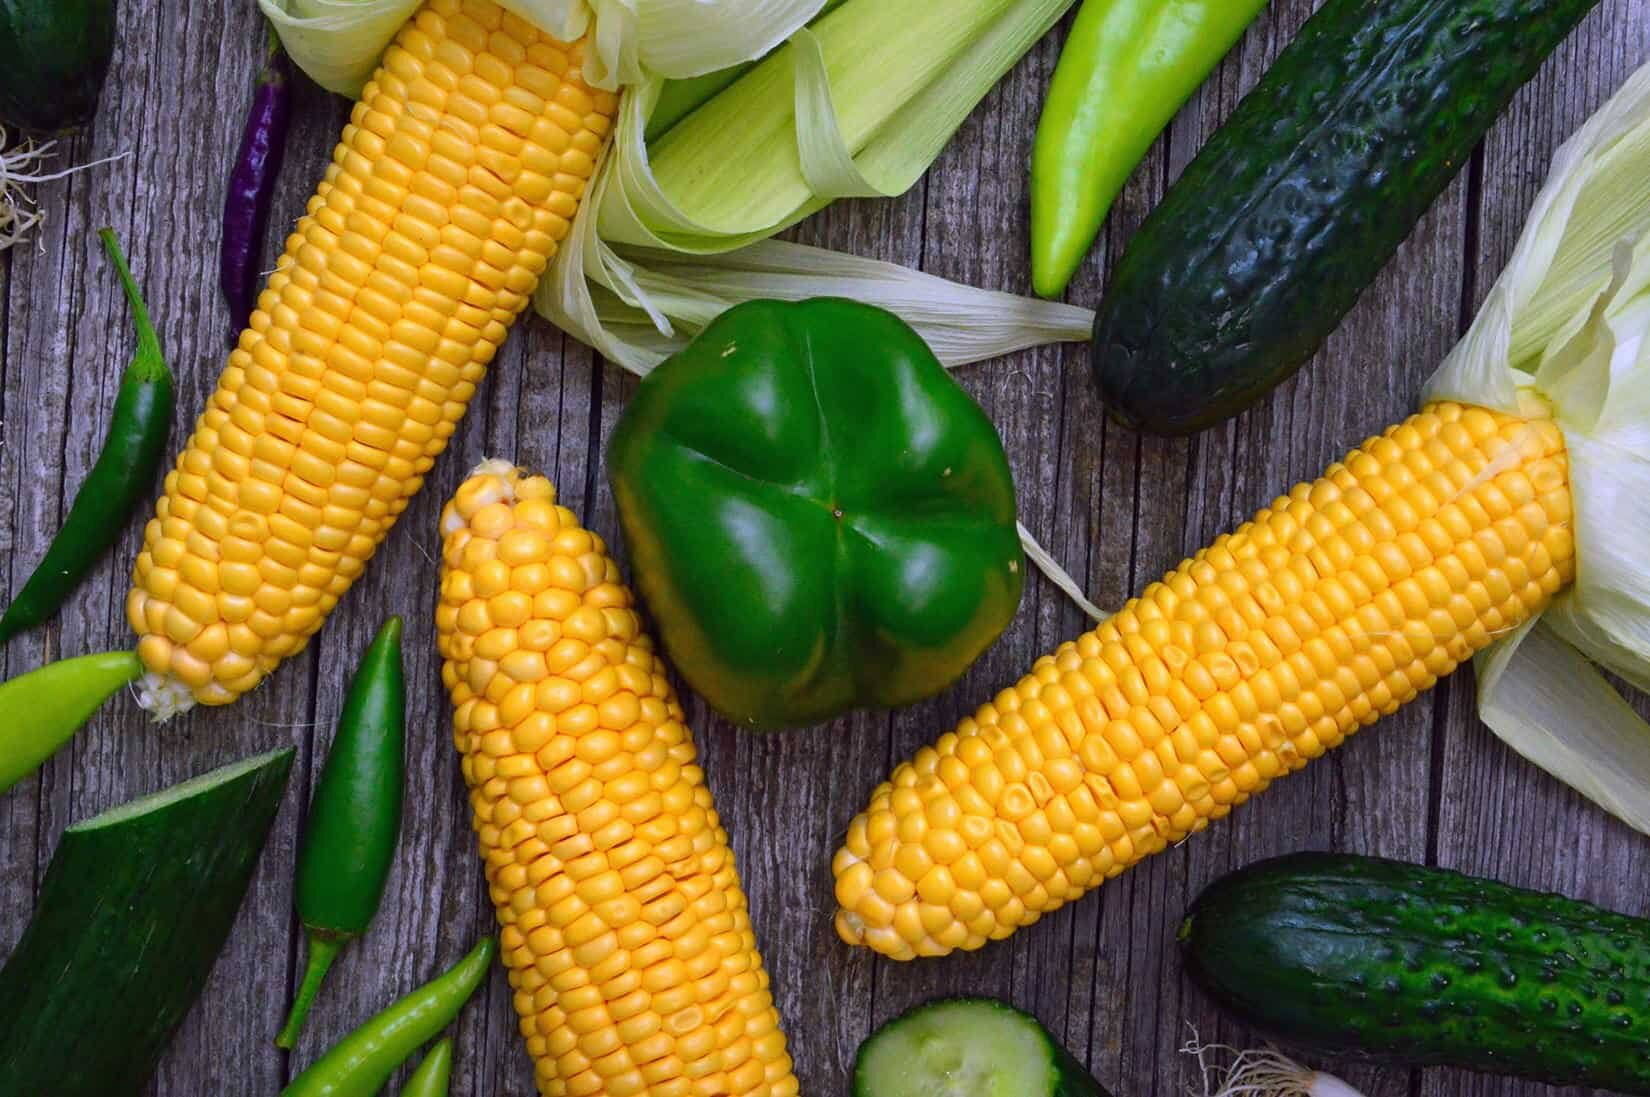 corn on the cob and green peppers on a table